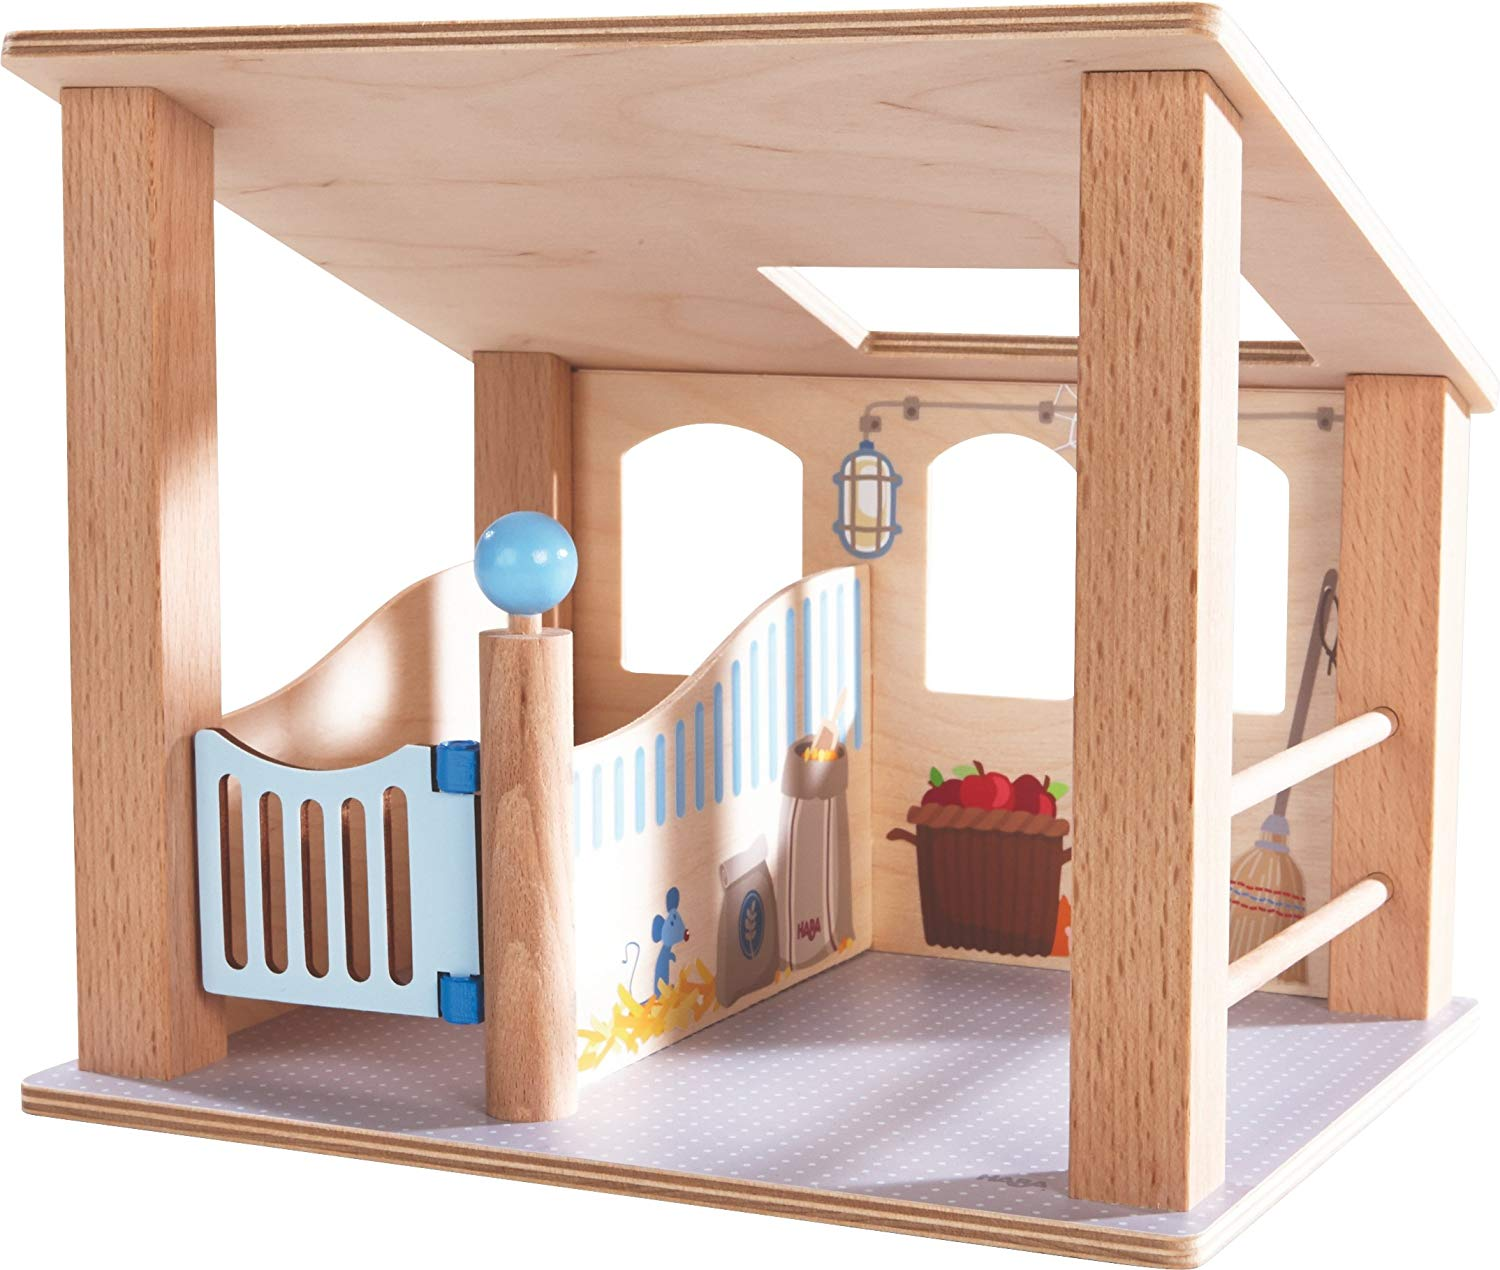 HABA 302167 Little Friends Horse Stall Toy